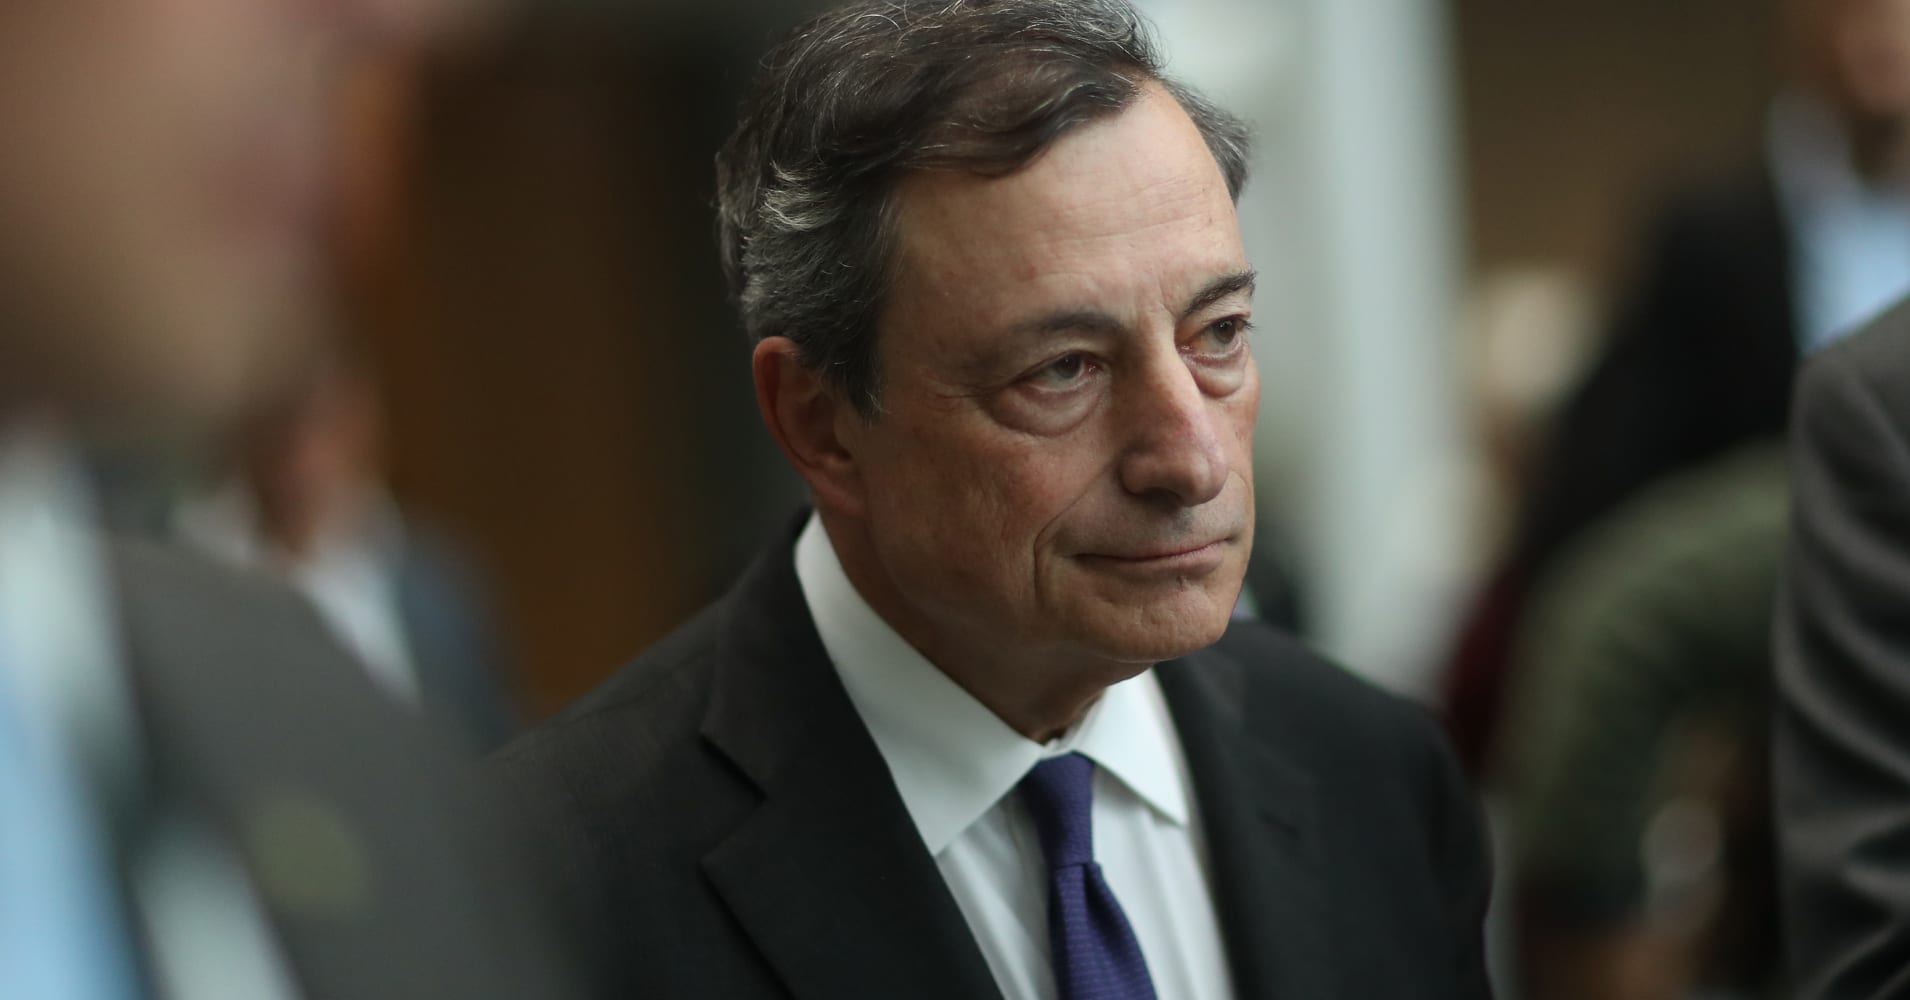 Draghi speaks of 'strengthening and broadening recovery' in euro zone, but says stimulus must remain